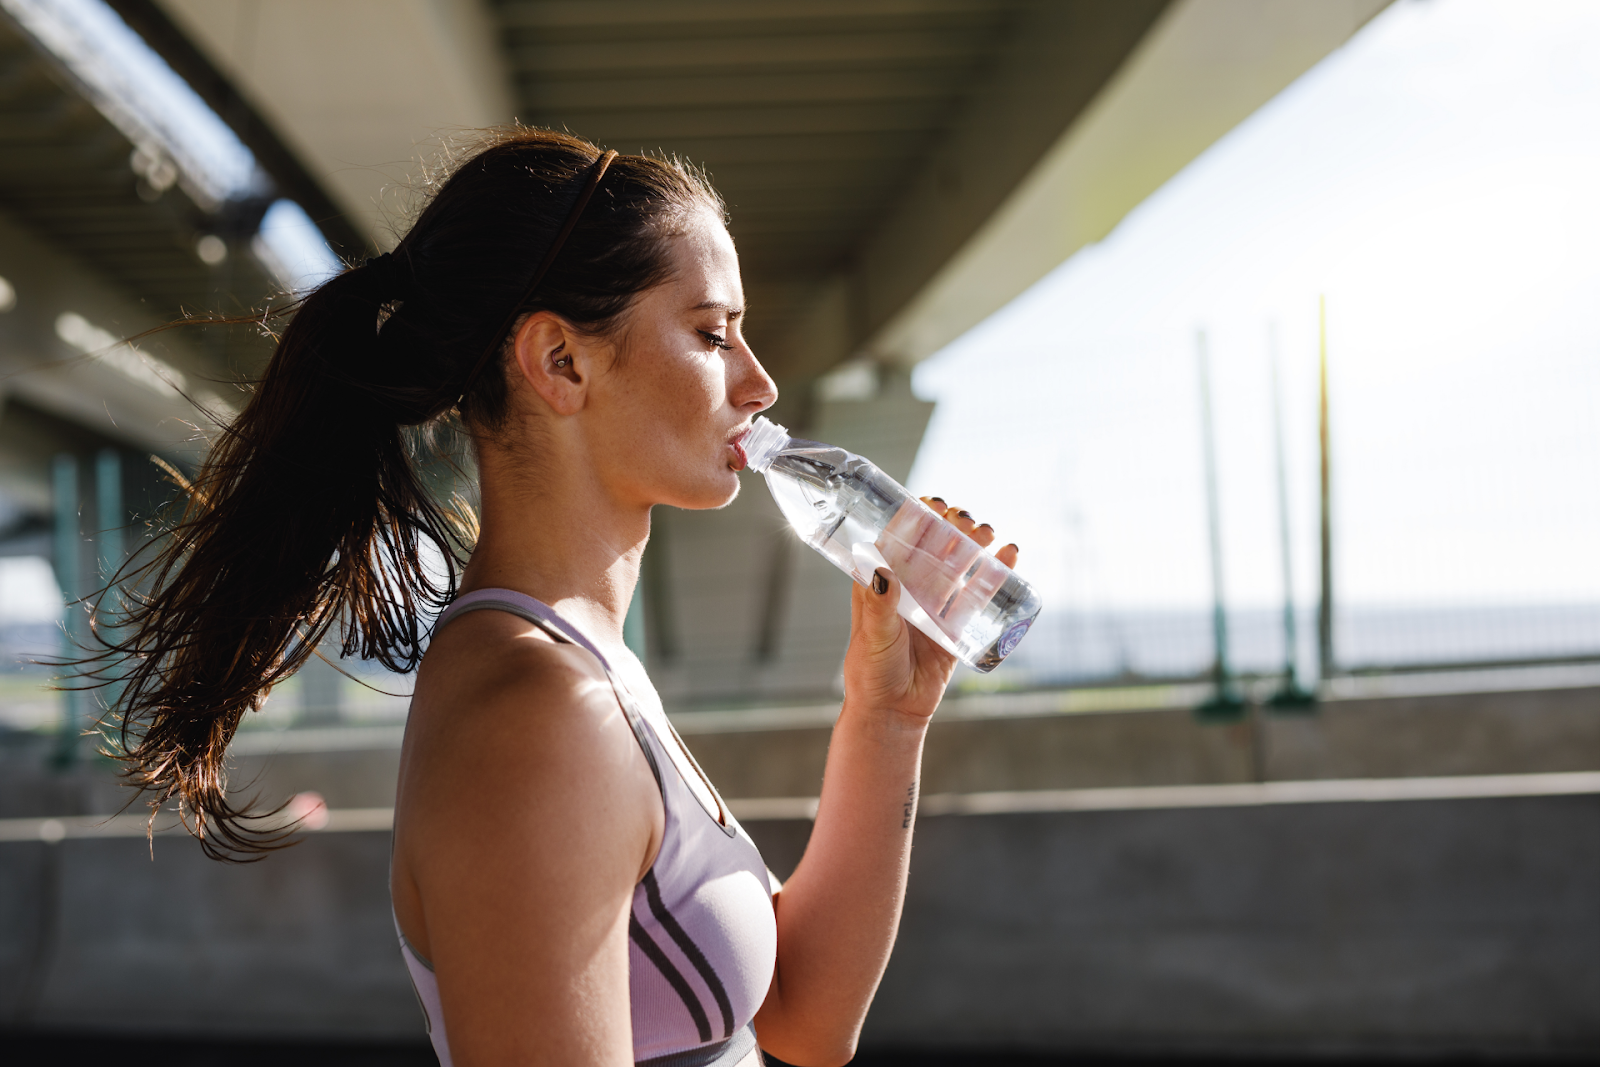 woman drinking out of water bottle